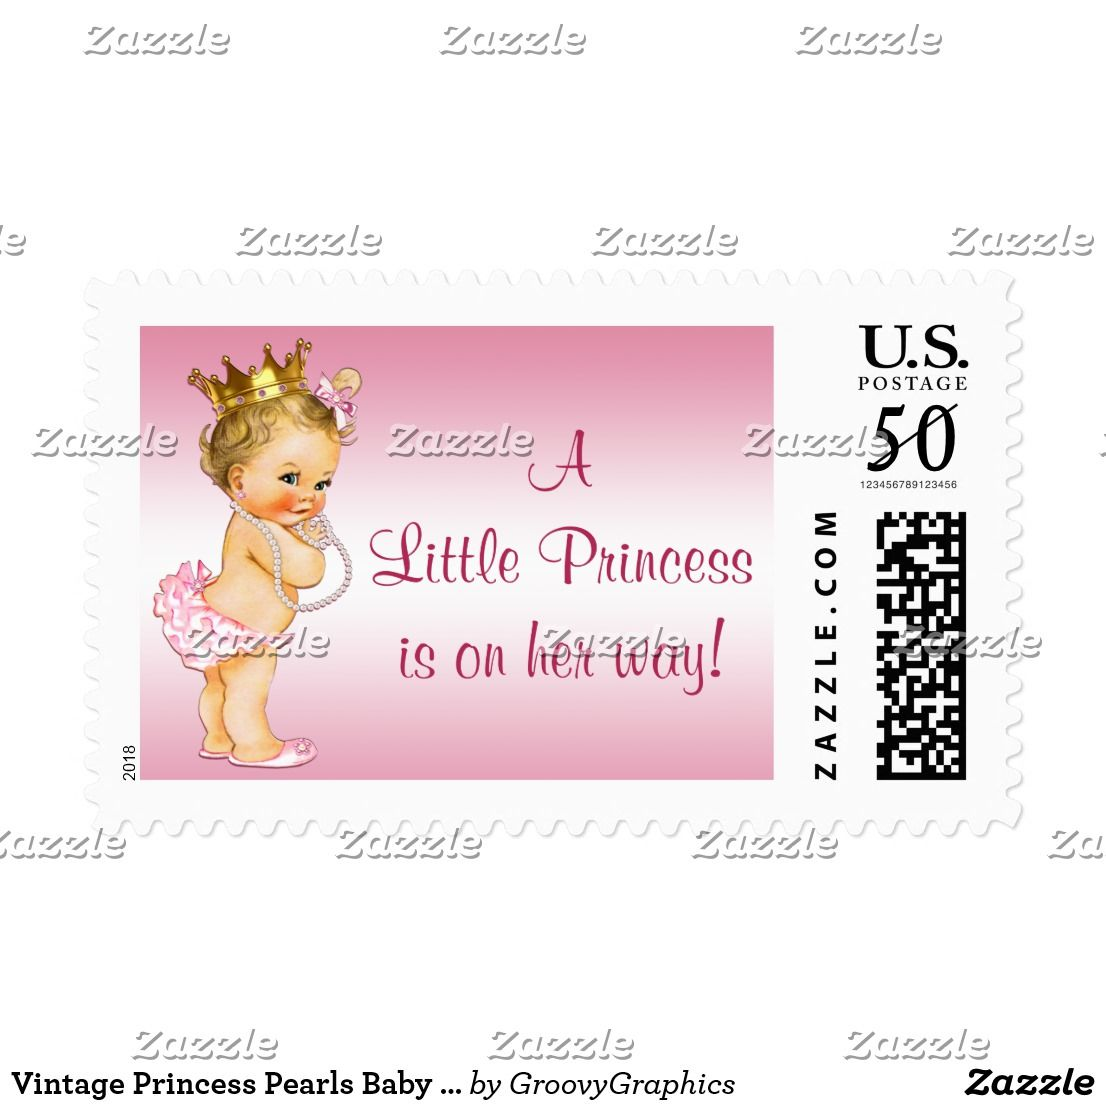 illustration with shower of elegant baby a pin princess pearls beautiful cute postage custom stamps pink vintage